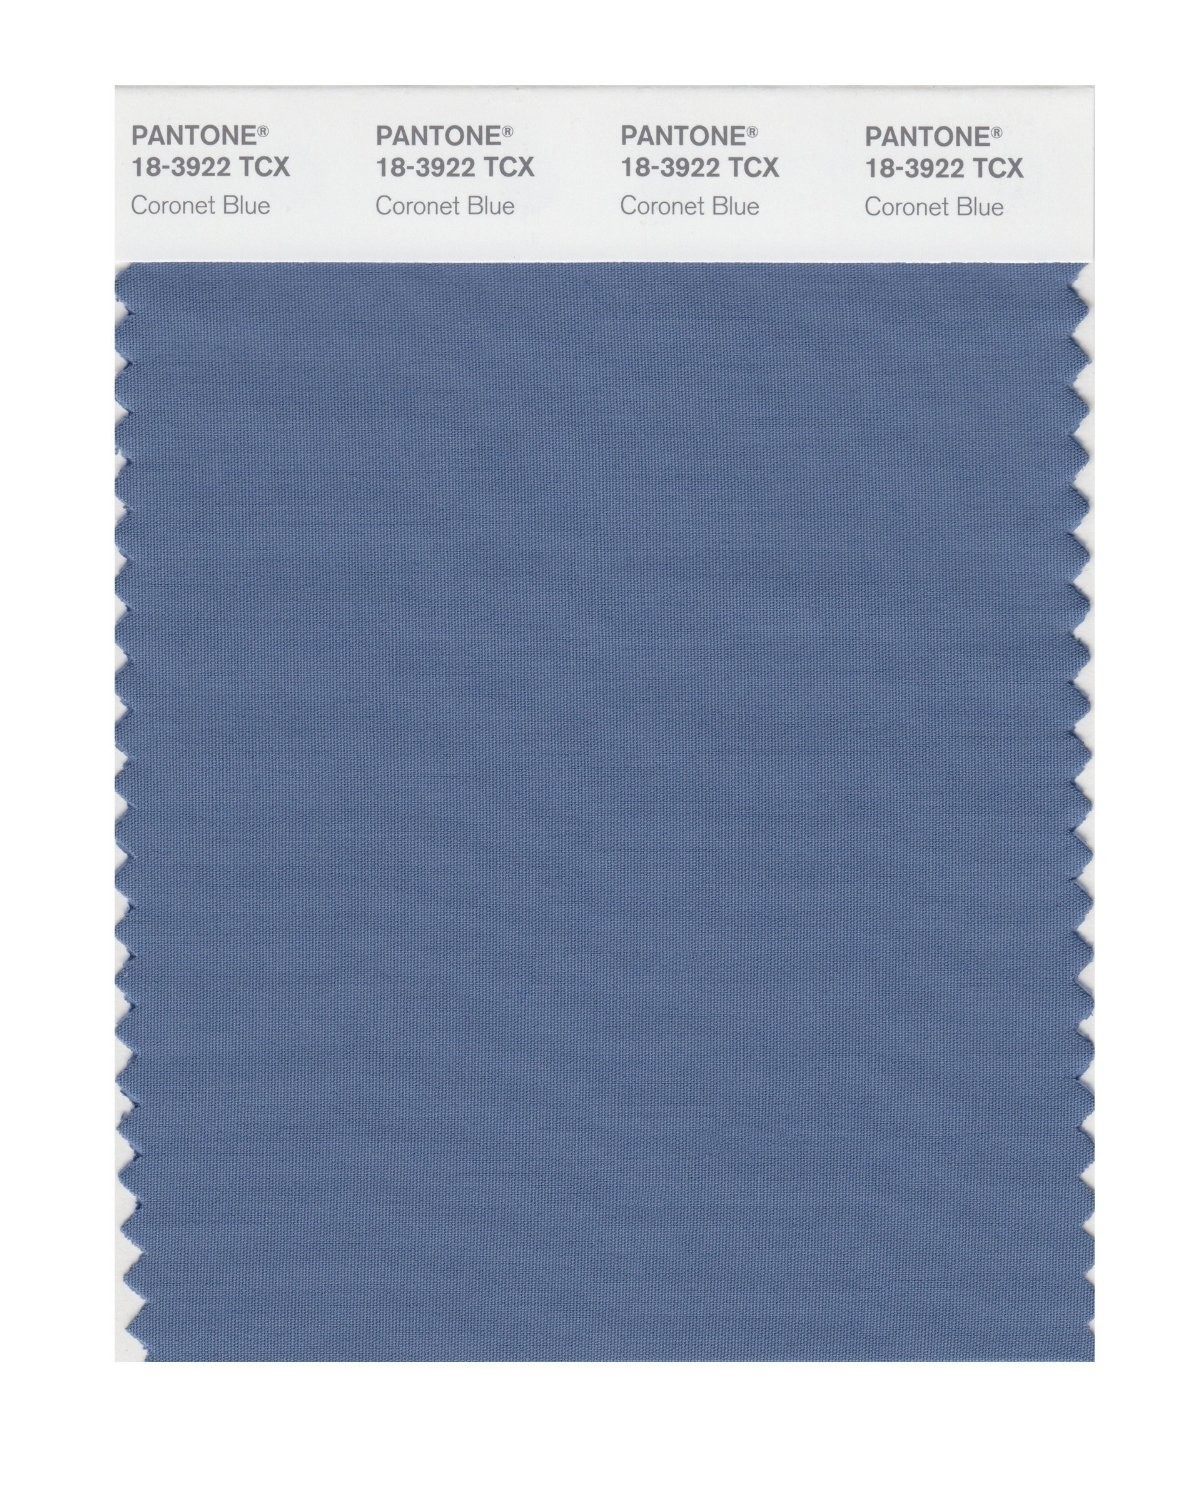 Pantone 18-3922 TCX Swatch Card Coronet Blue